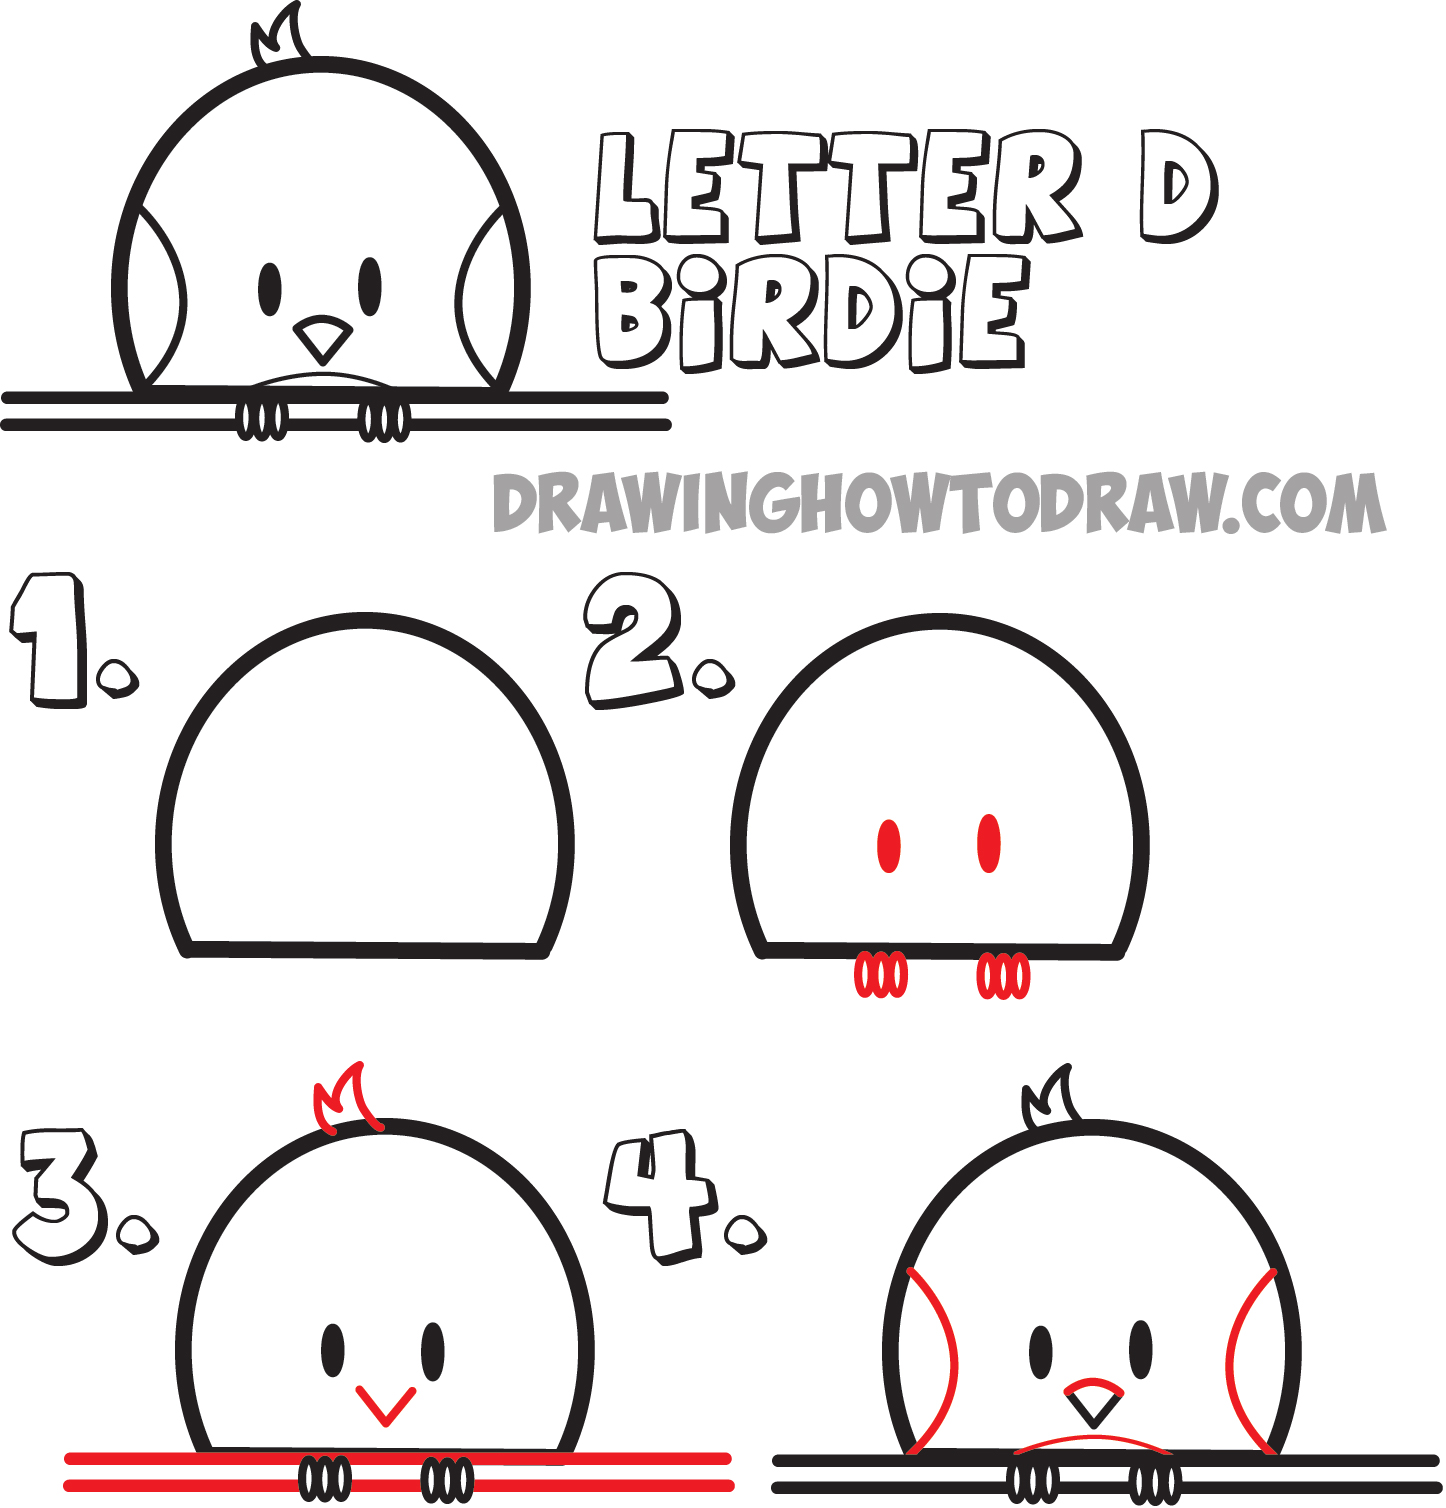 Uncategorized How To Draw Step By Step For Kids Animals huge guide to drawing cartoon animals from the uppercase letter d learn how draw birds d